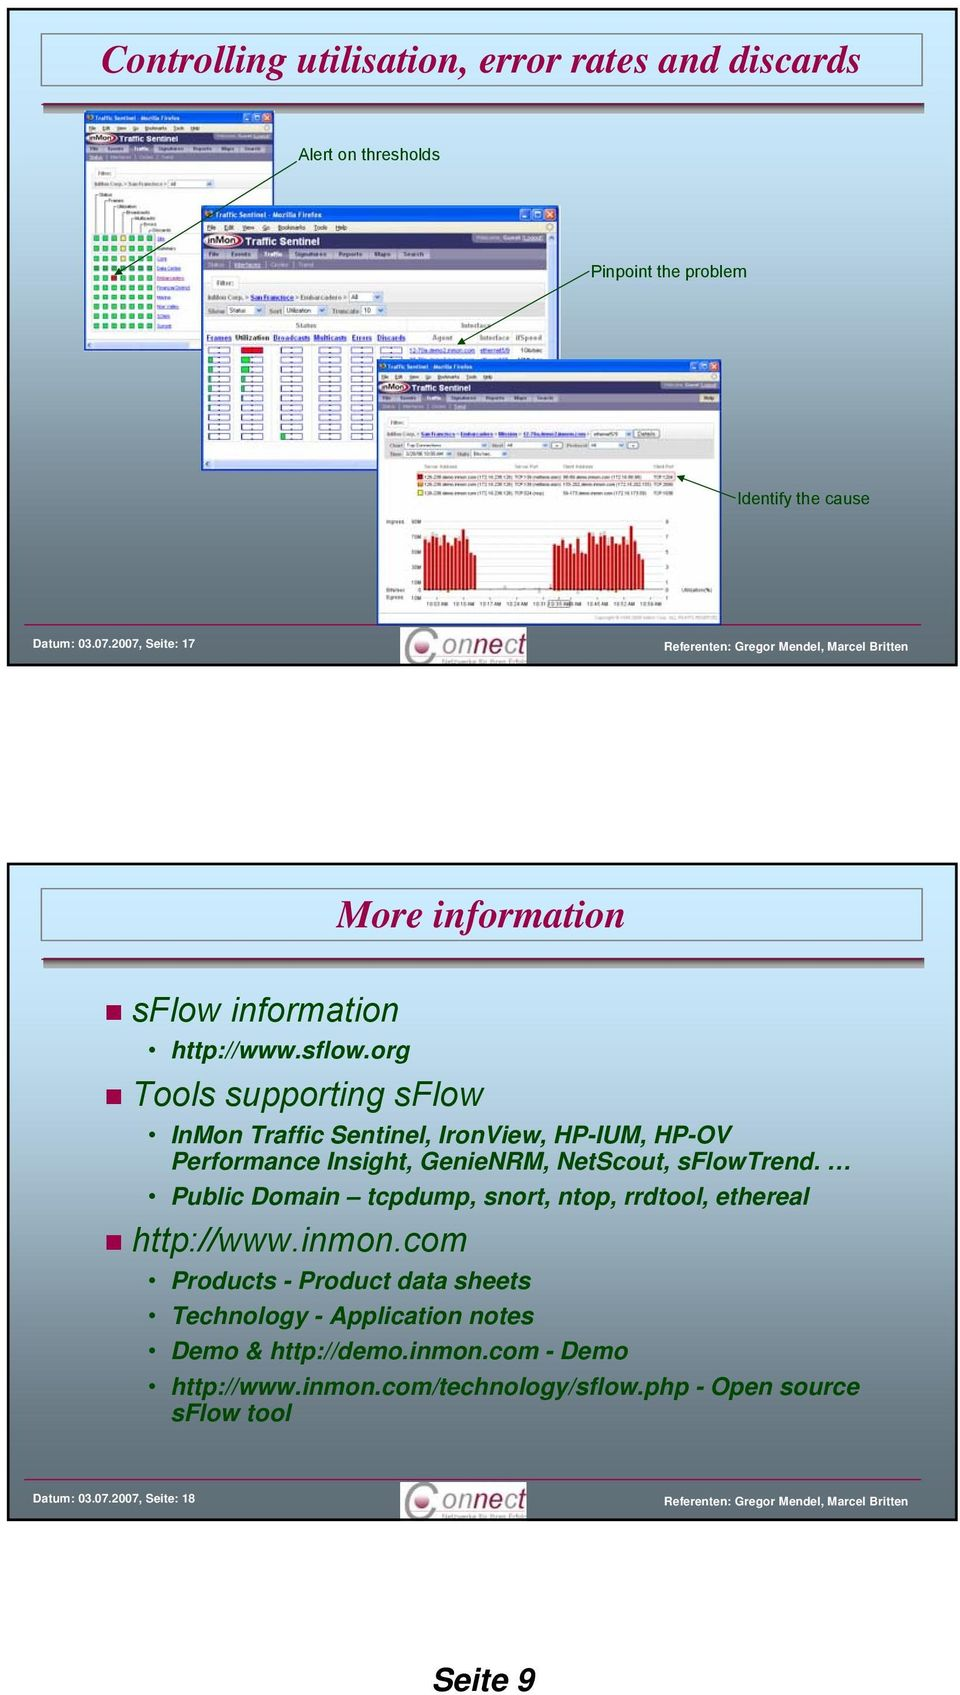 org Tools supporting InMon Traffic Sentinel, IronView, HP-IUM, HP-OV Performance Insight, GenieNRM, NetScout, Trend.